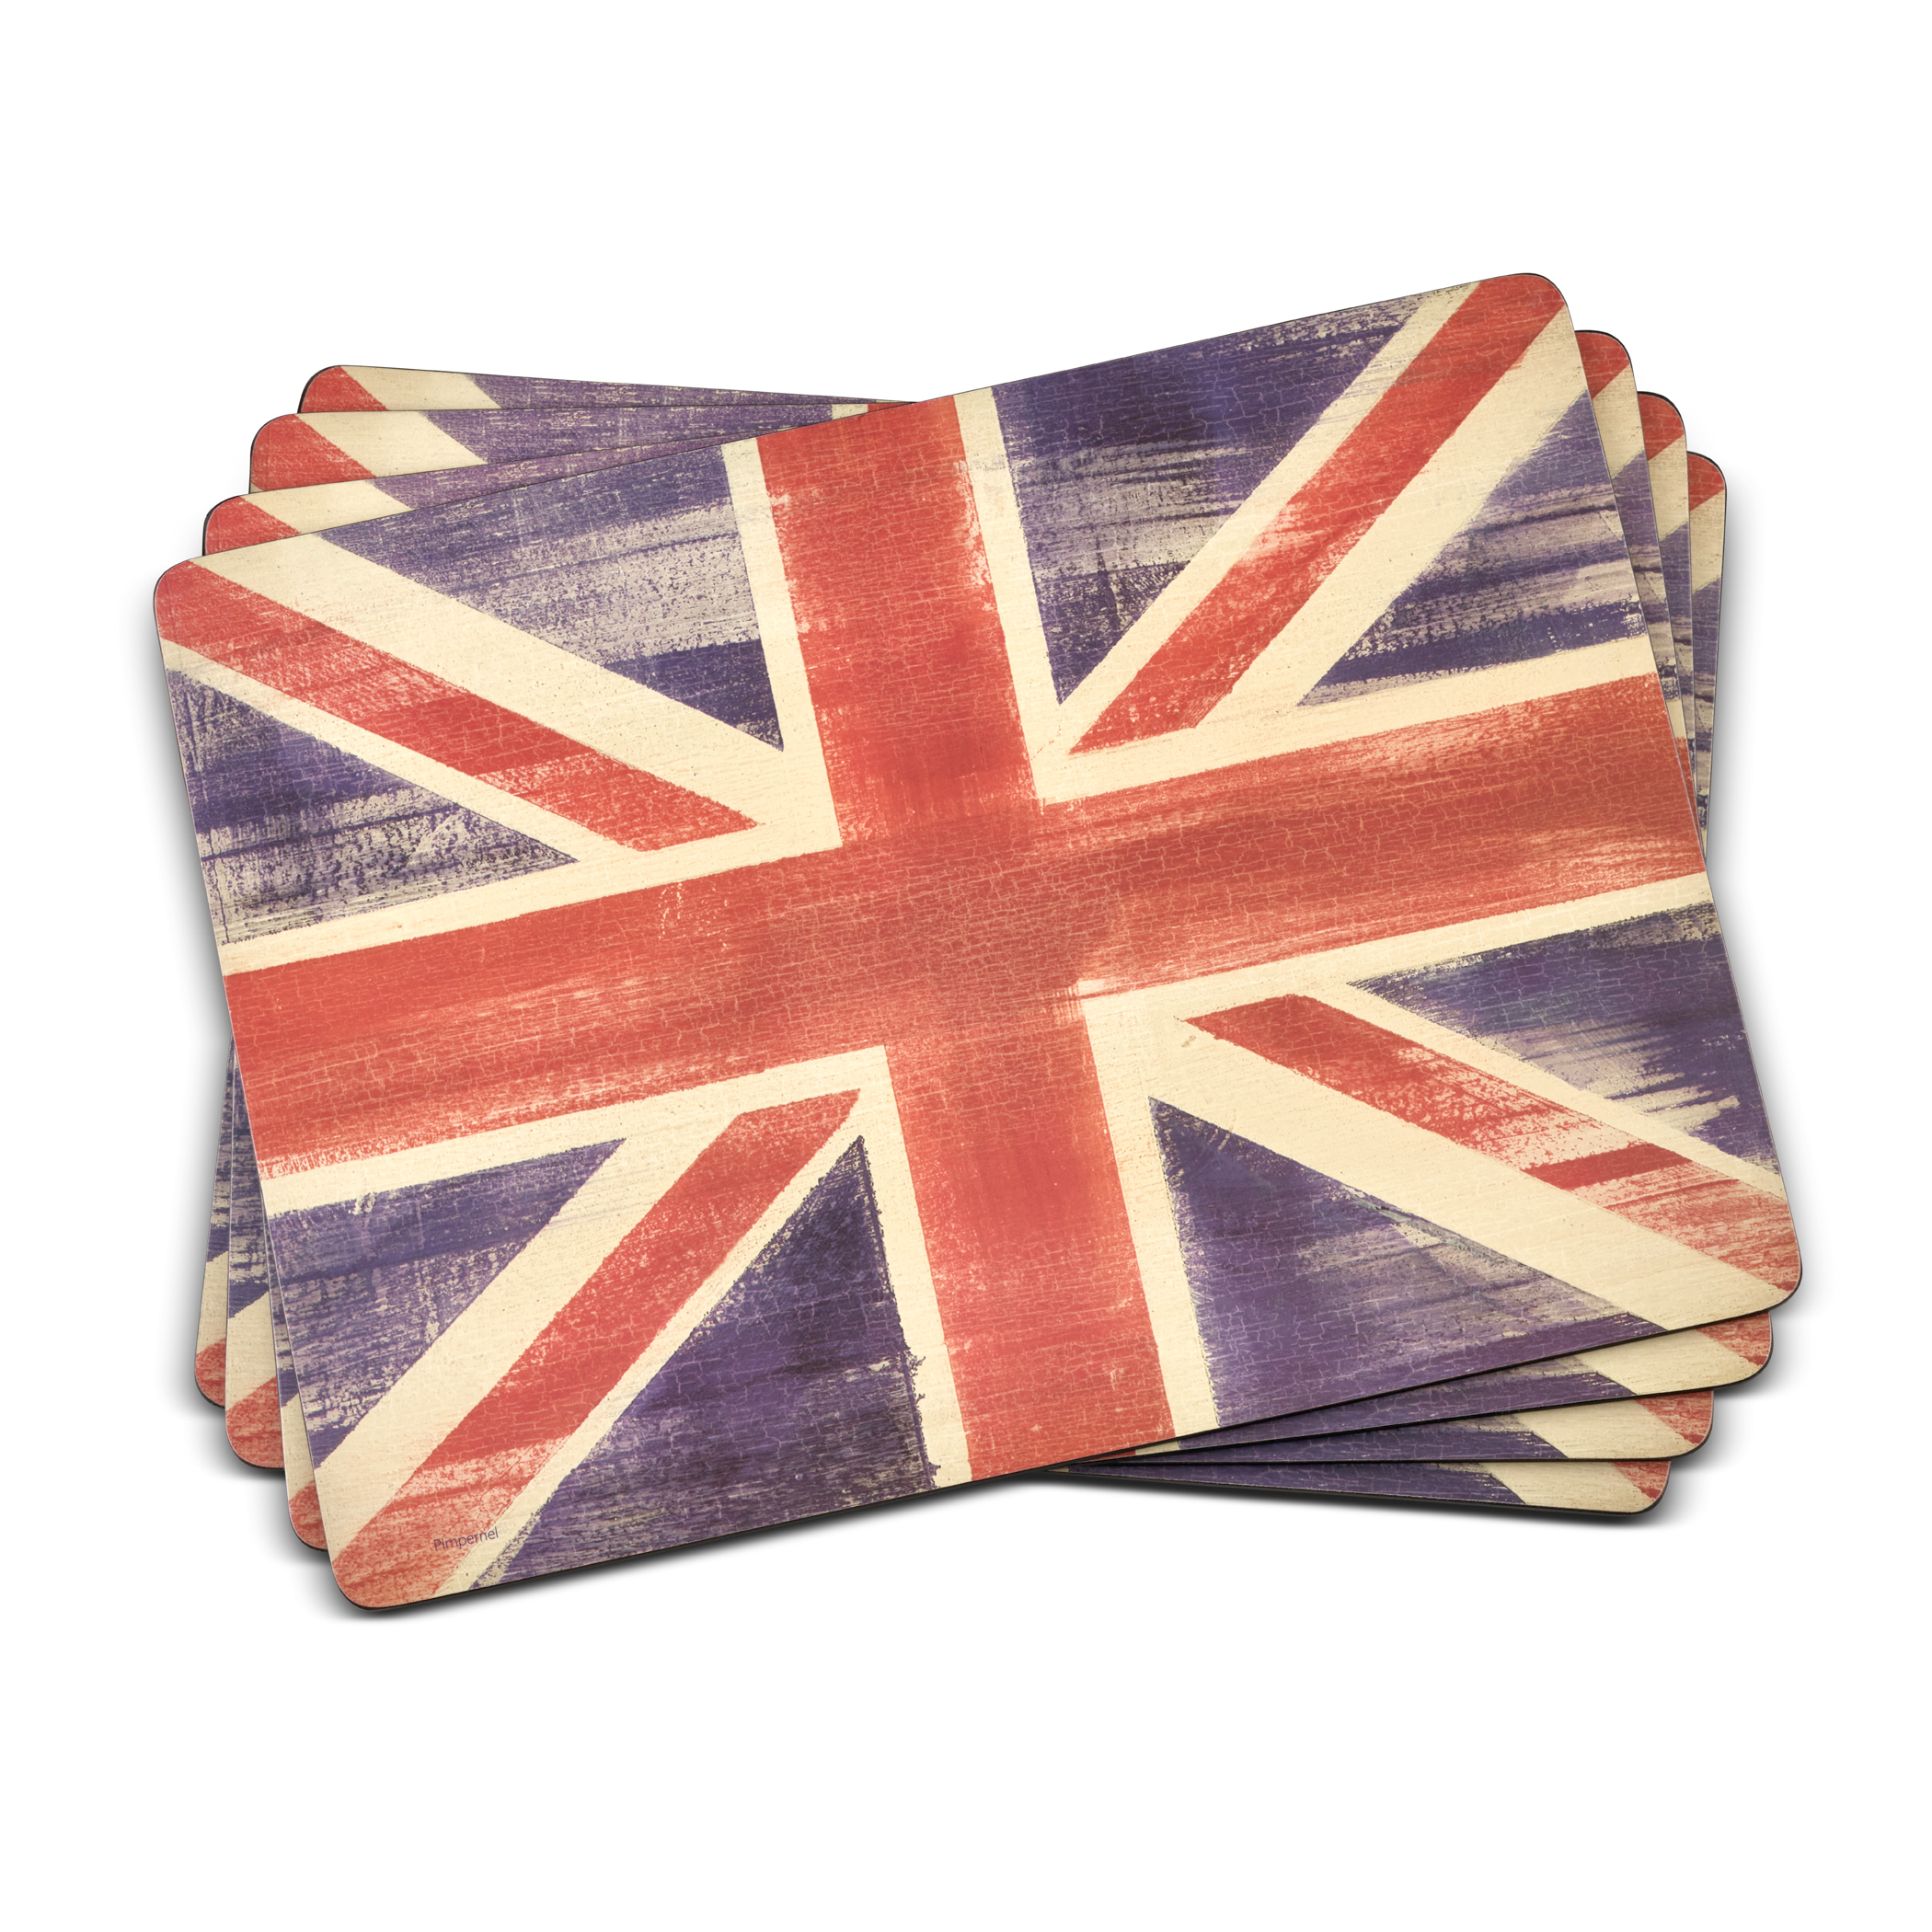 Pimpernel Union Jack Placemats Set of 4 image number 0